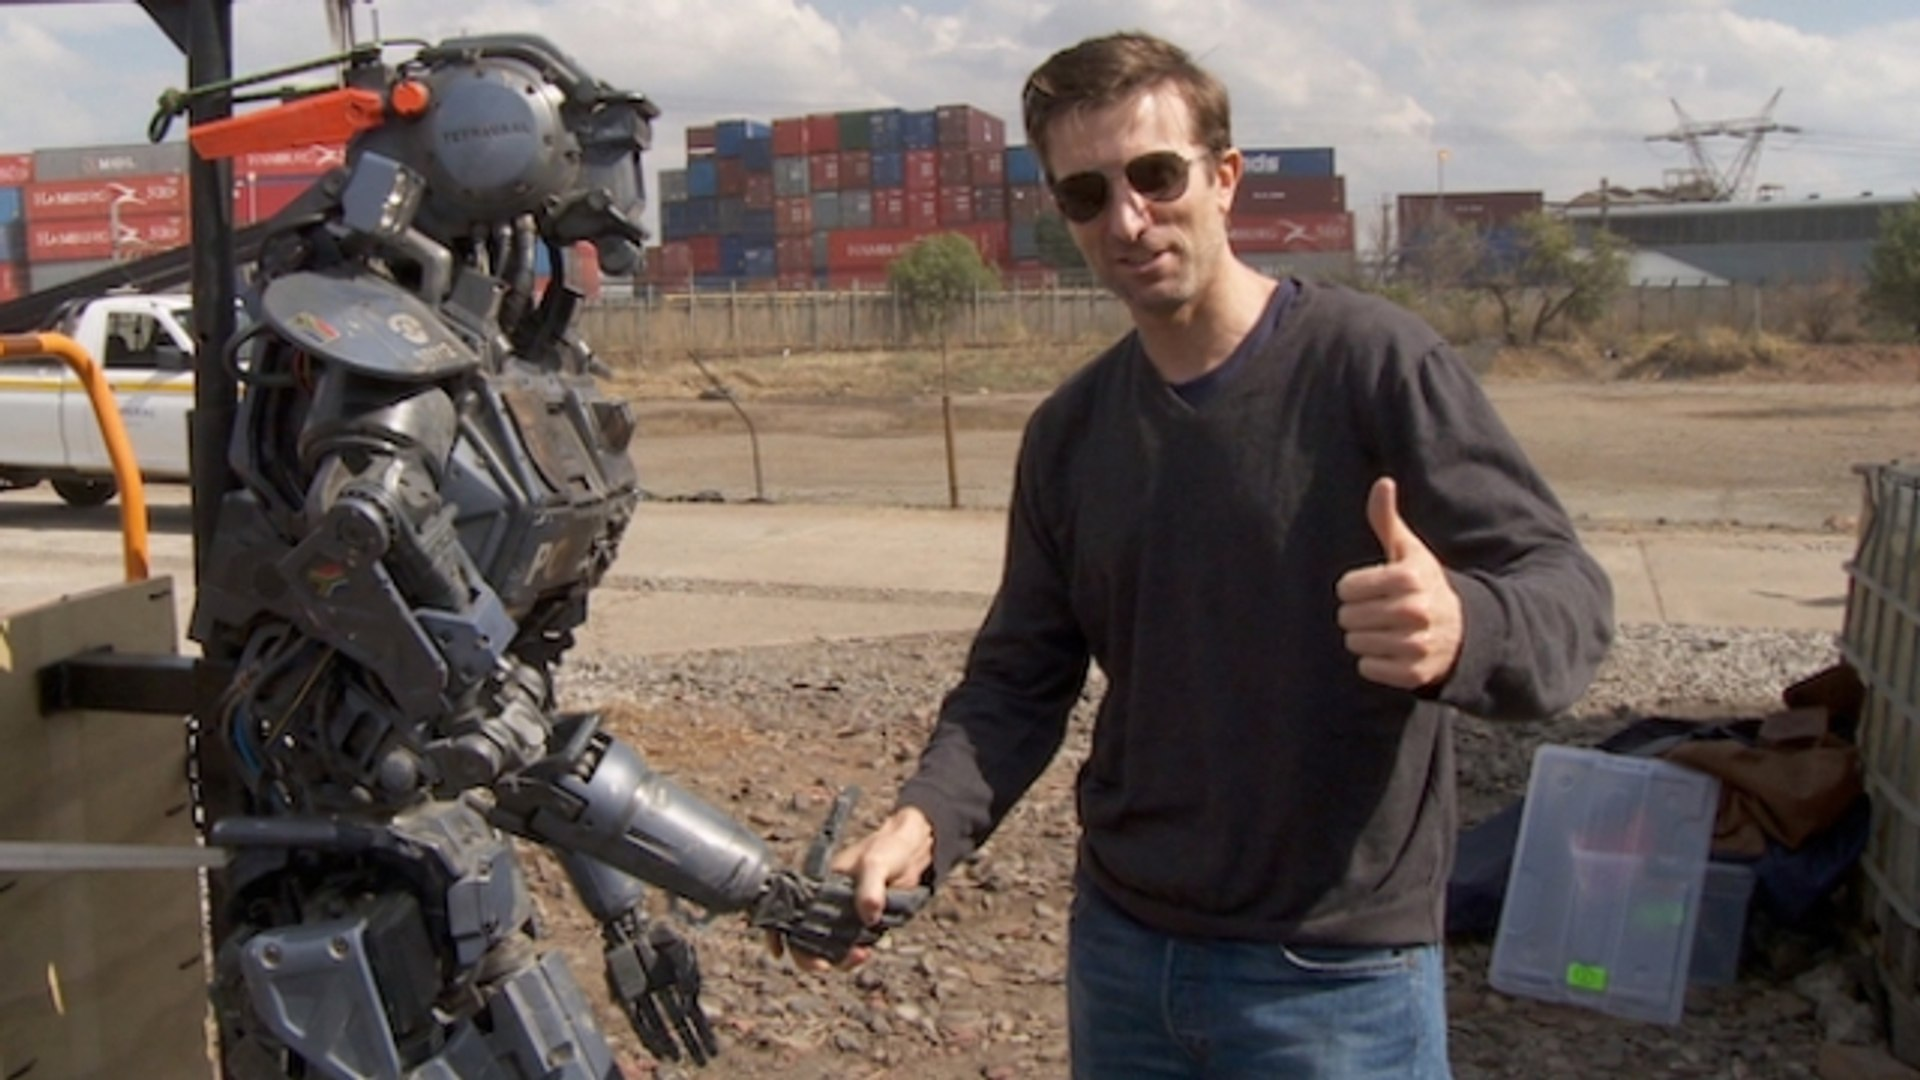 Behind the Scenes of Chappie